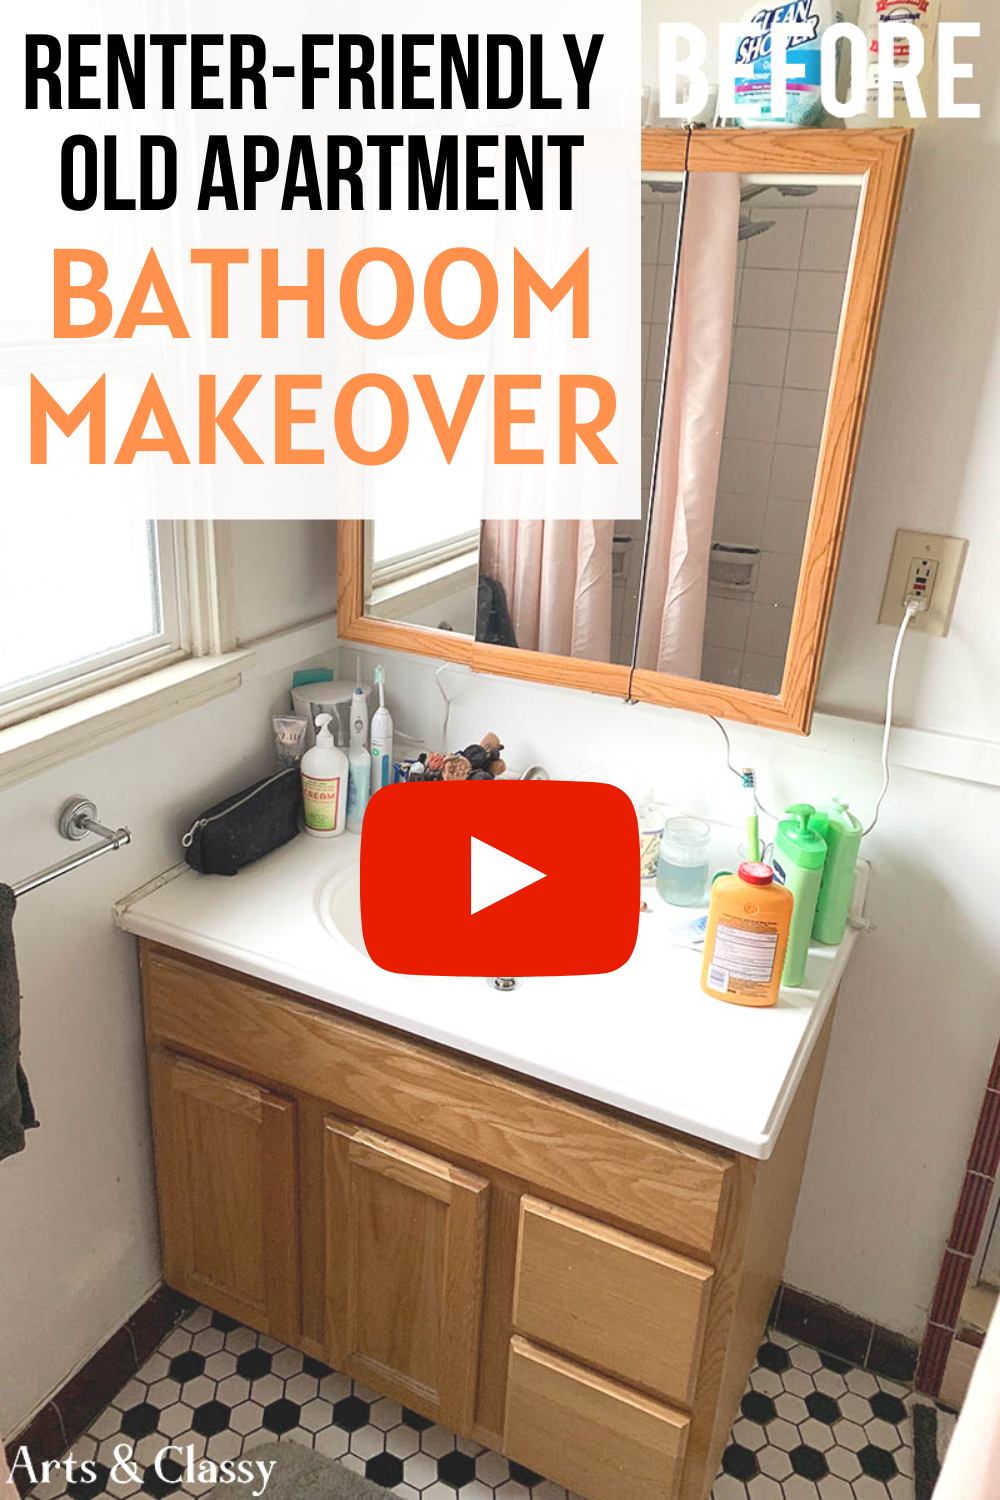 Renter Friendly Apartment Bathroom Makeover Tutorial In 2020 Rental Decorating Small Bathroom Decor Decorating Bathroom